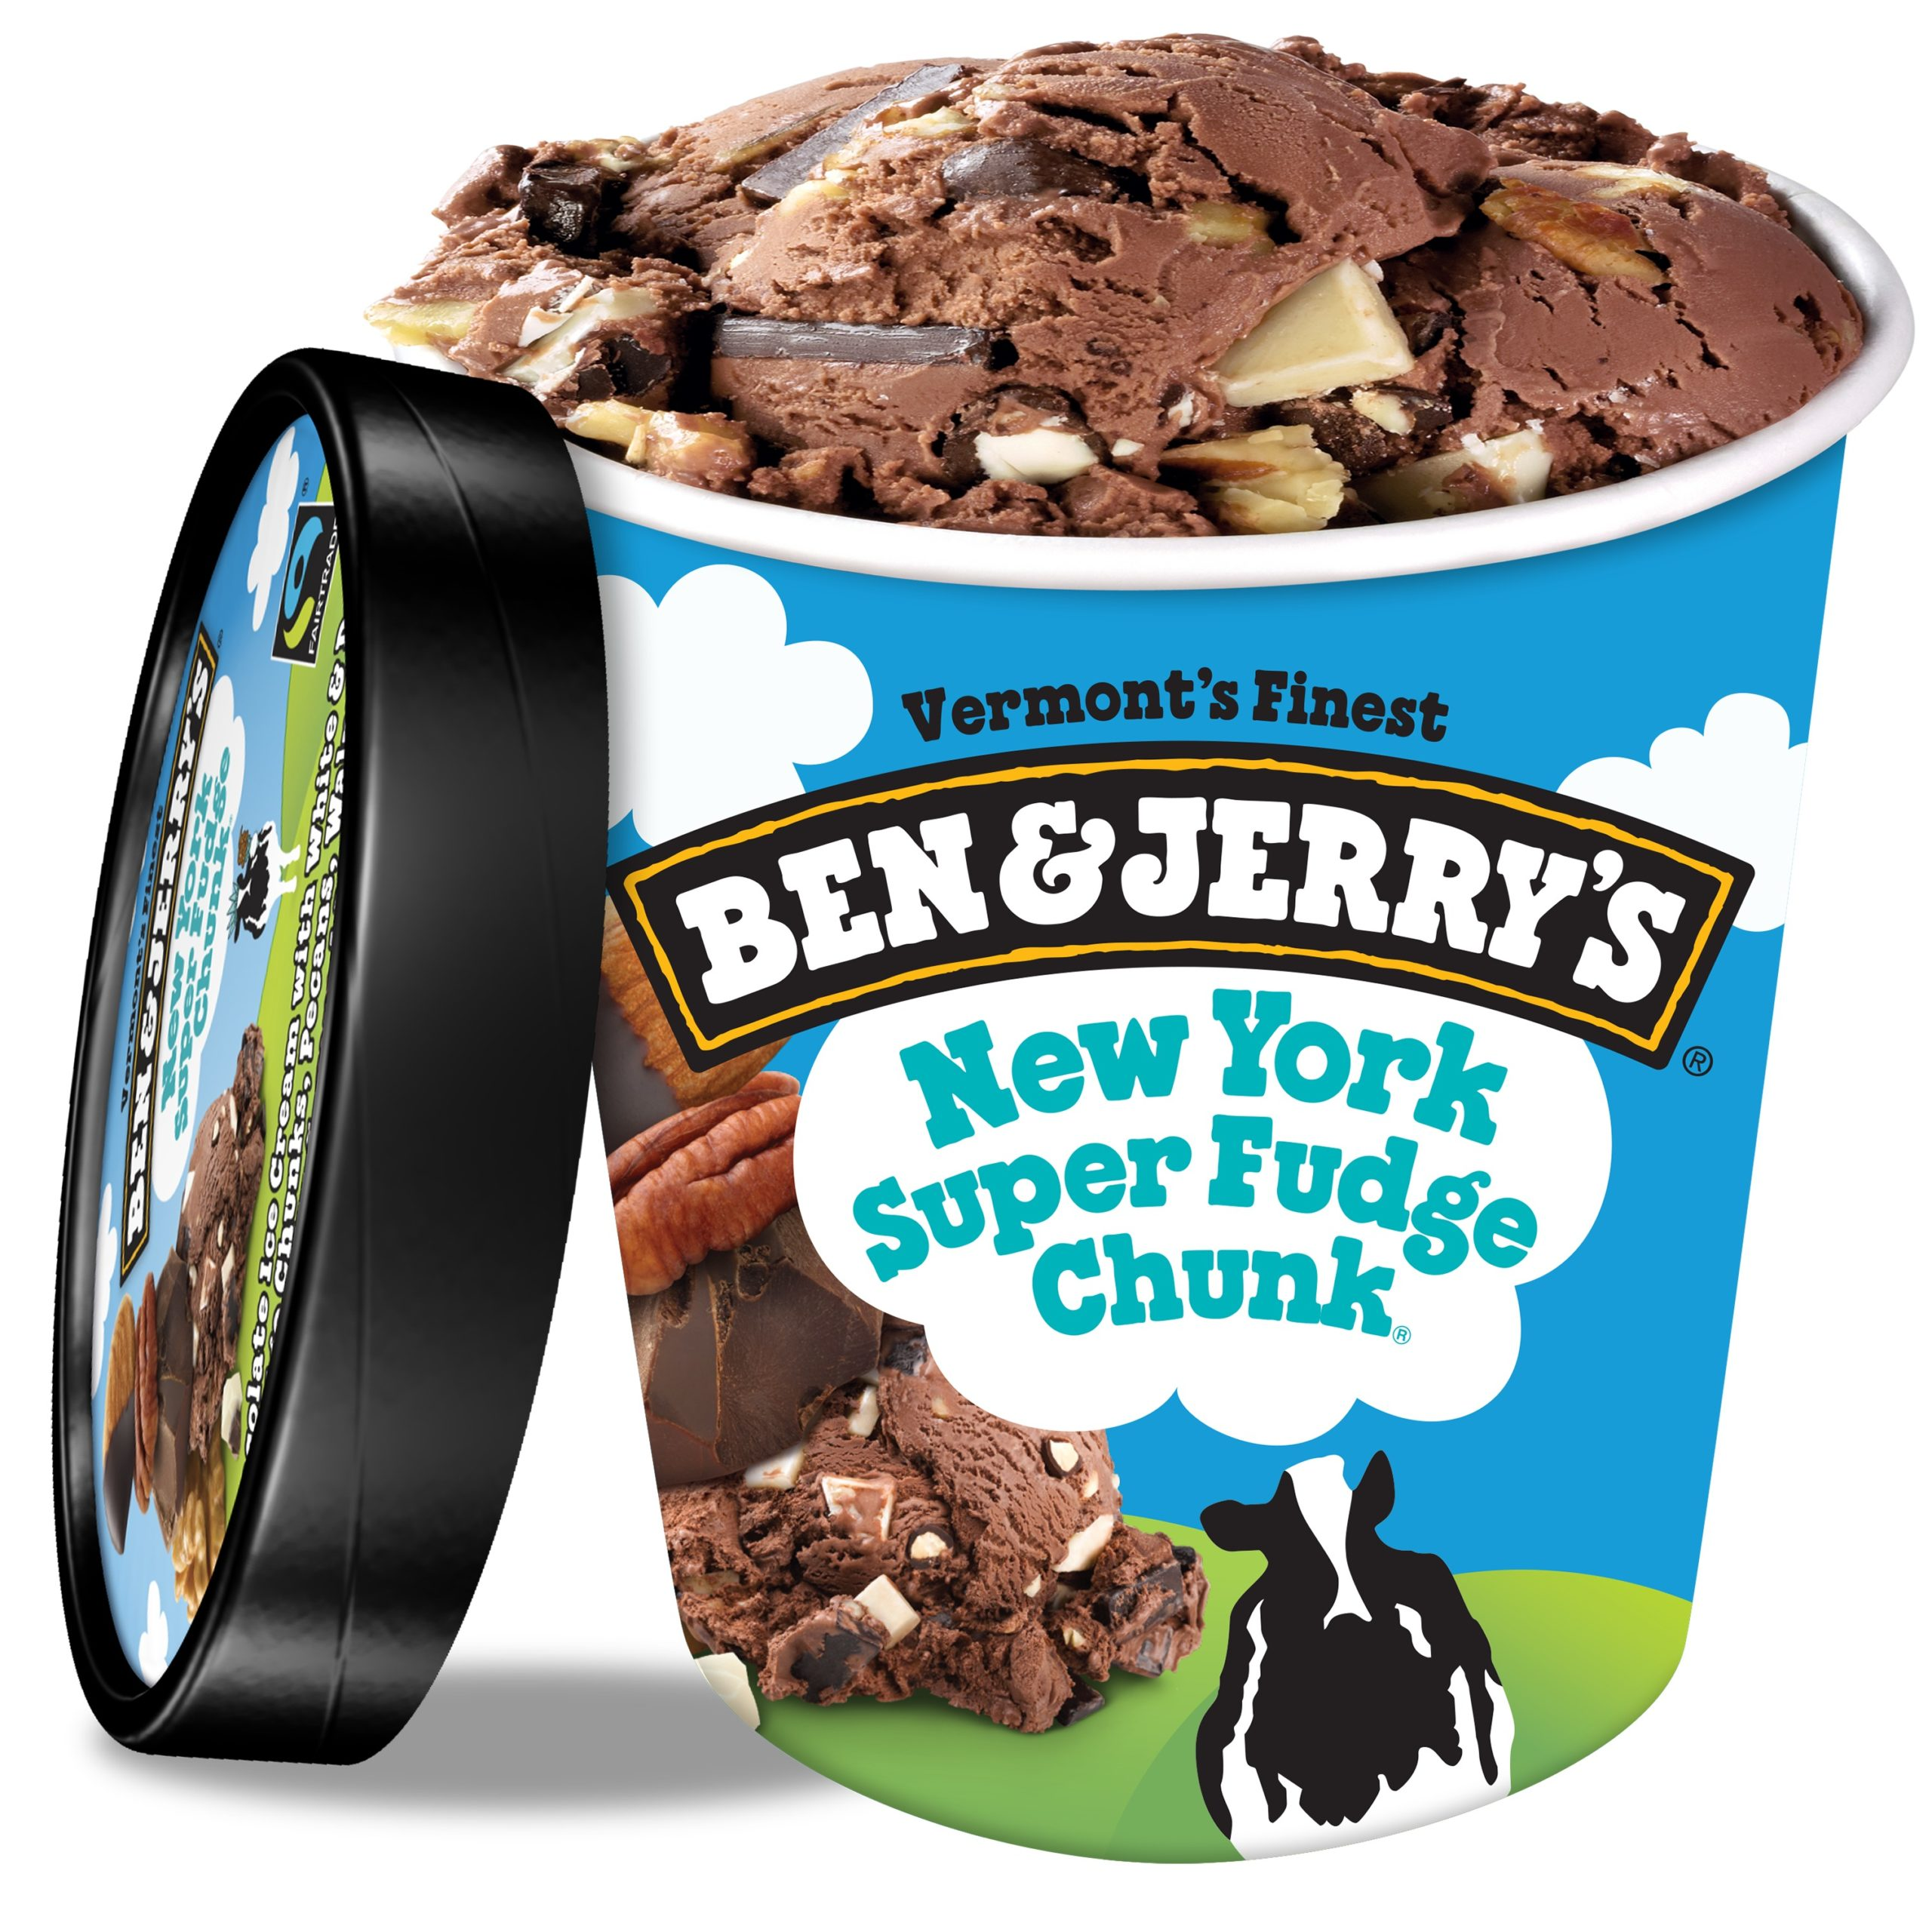 Ben & Jerry Super Fudge Ice Cream 1PT